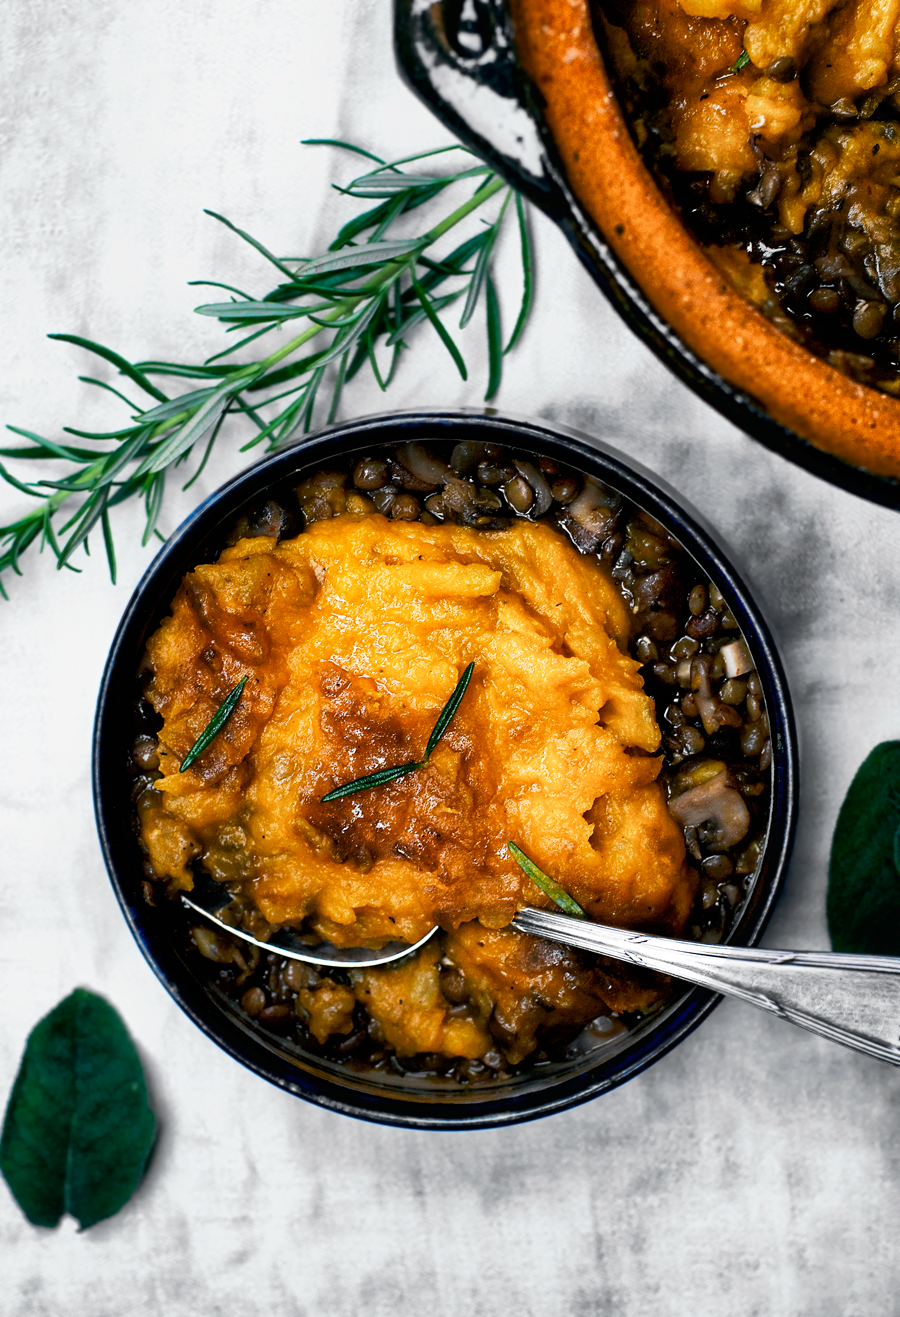 This vegan lentil shepherd's pie is a modern, plant based version of the classic - a rich mushroom and lentil base, topped with creamy mashed potato and pumpkin. Total cold weather comfort food.